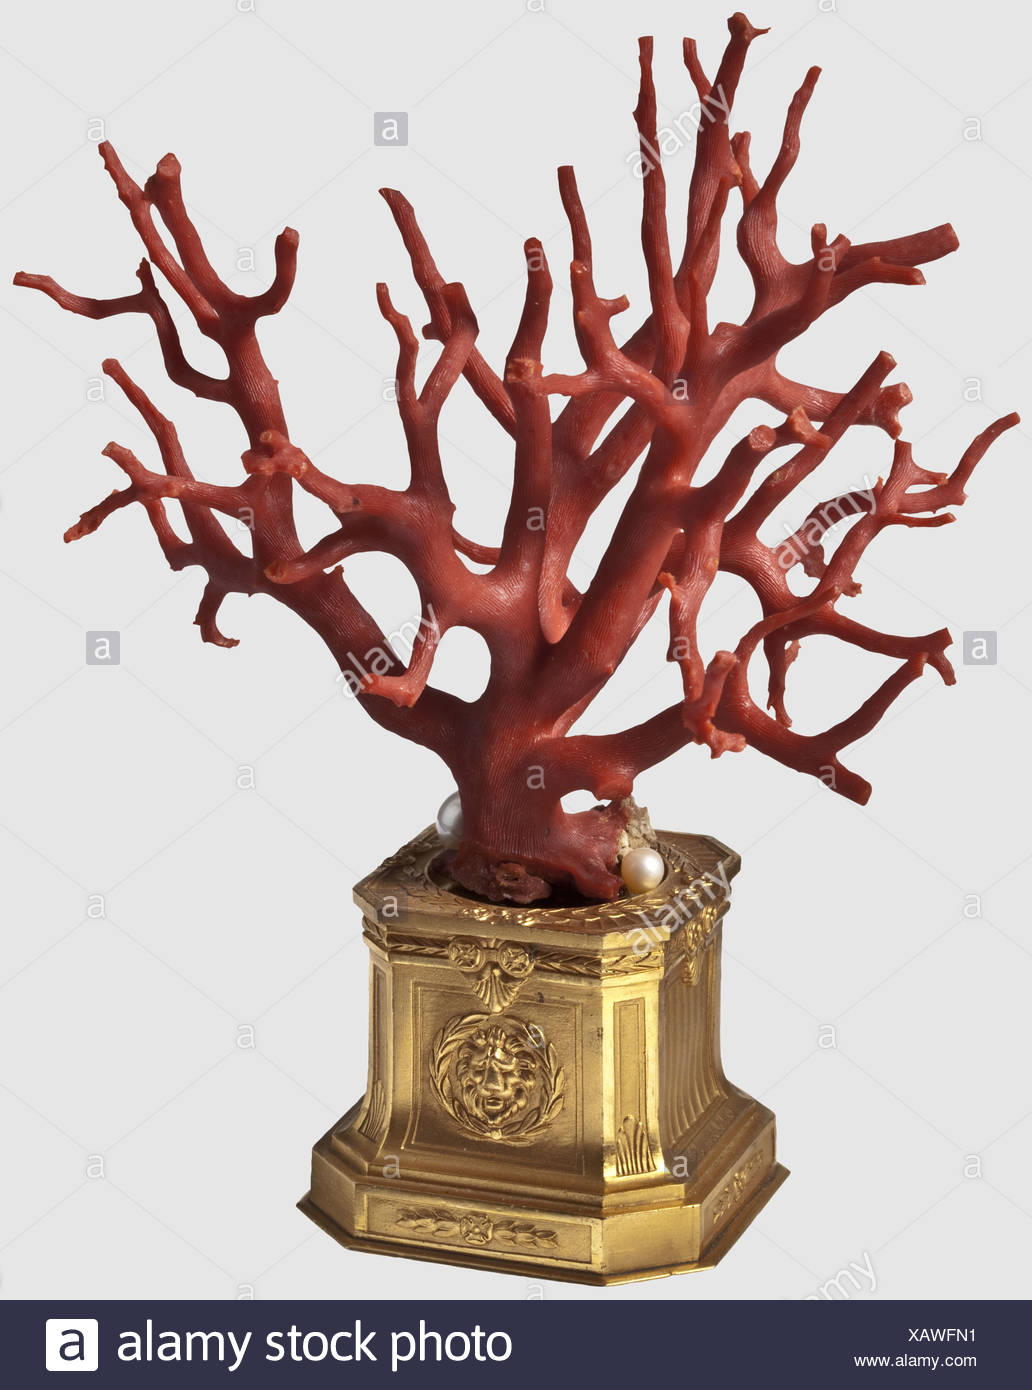 A tree-shaped coral, Southern Italy, 19th century A richly branching tree of precious coral with three pearls attached to the base. Mounted on a tiered, gilded, brass base with lion heads in relief on two sides. Total height 18 cm, historic, historical, 19th century, handicrafts, handcraft, craft, object, objects, stills, clipping, clippings, cut out, cut-out, cut-outs, fine arts, art, artful, Additional-Rights-Clearences-NA - Stock Image